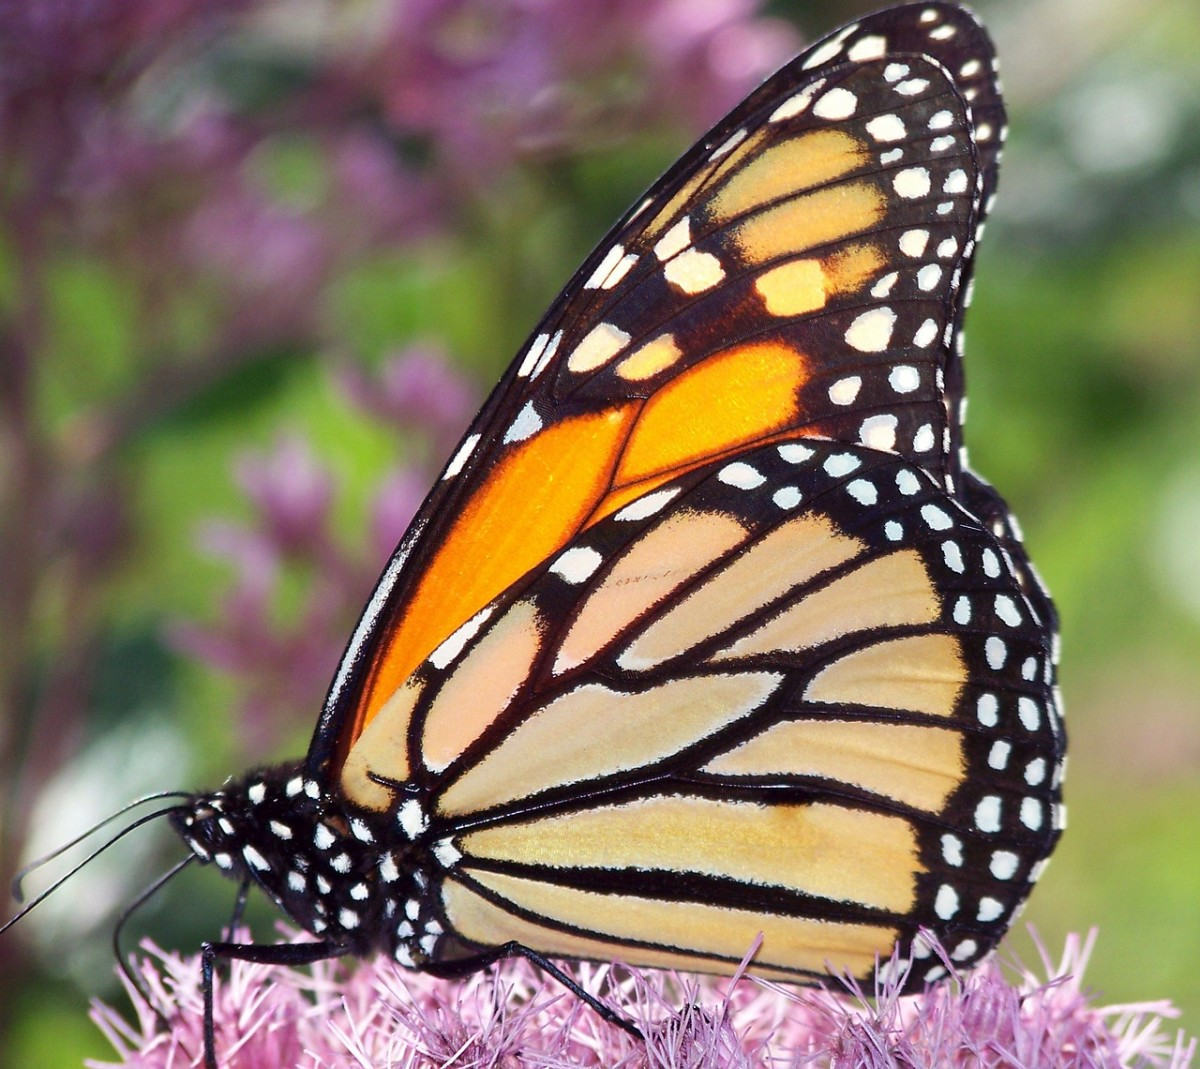 Butterfly Identification Guide: 25 Types of Butterflies (With Photos)